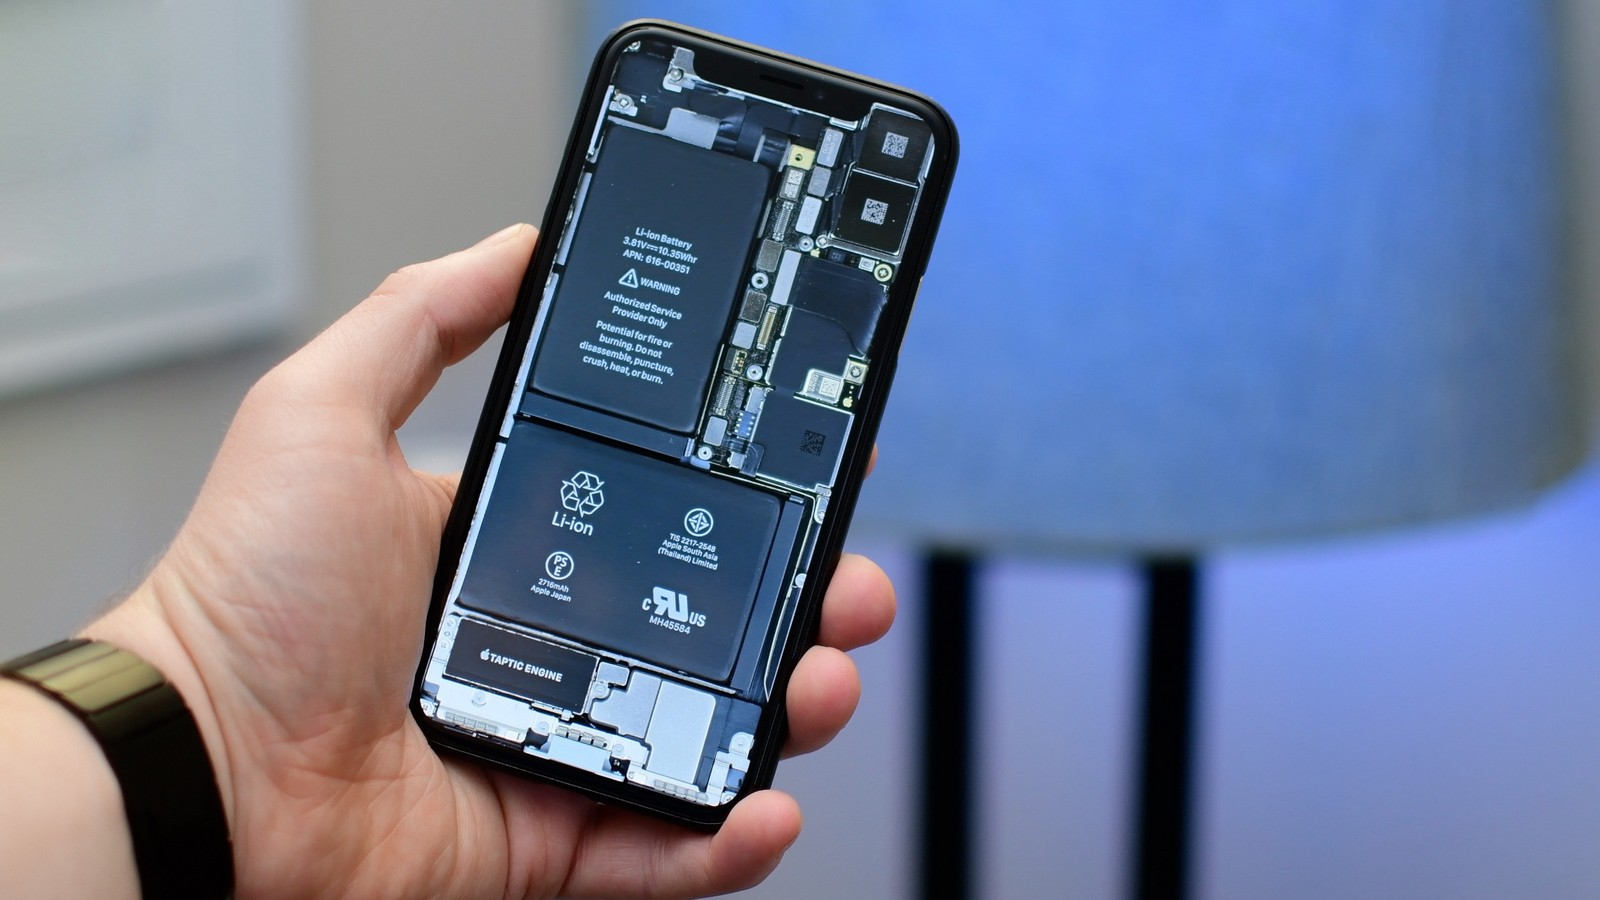 iPhone 2018 will surprise with increased battery life